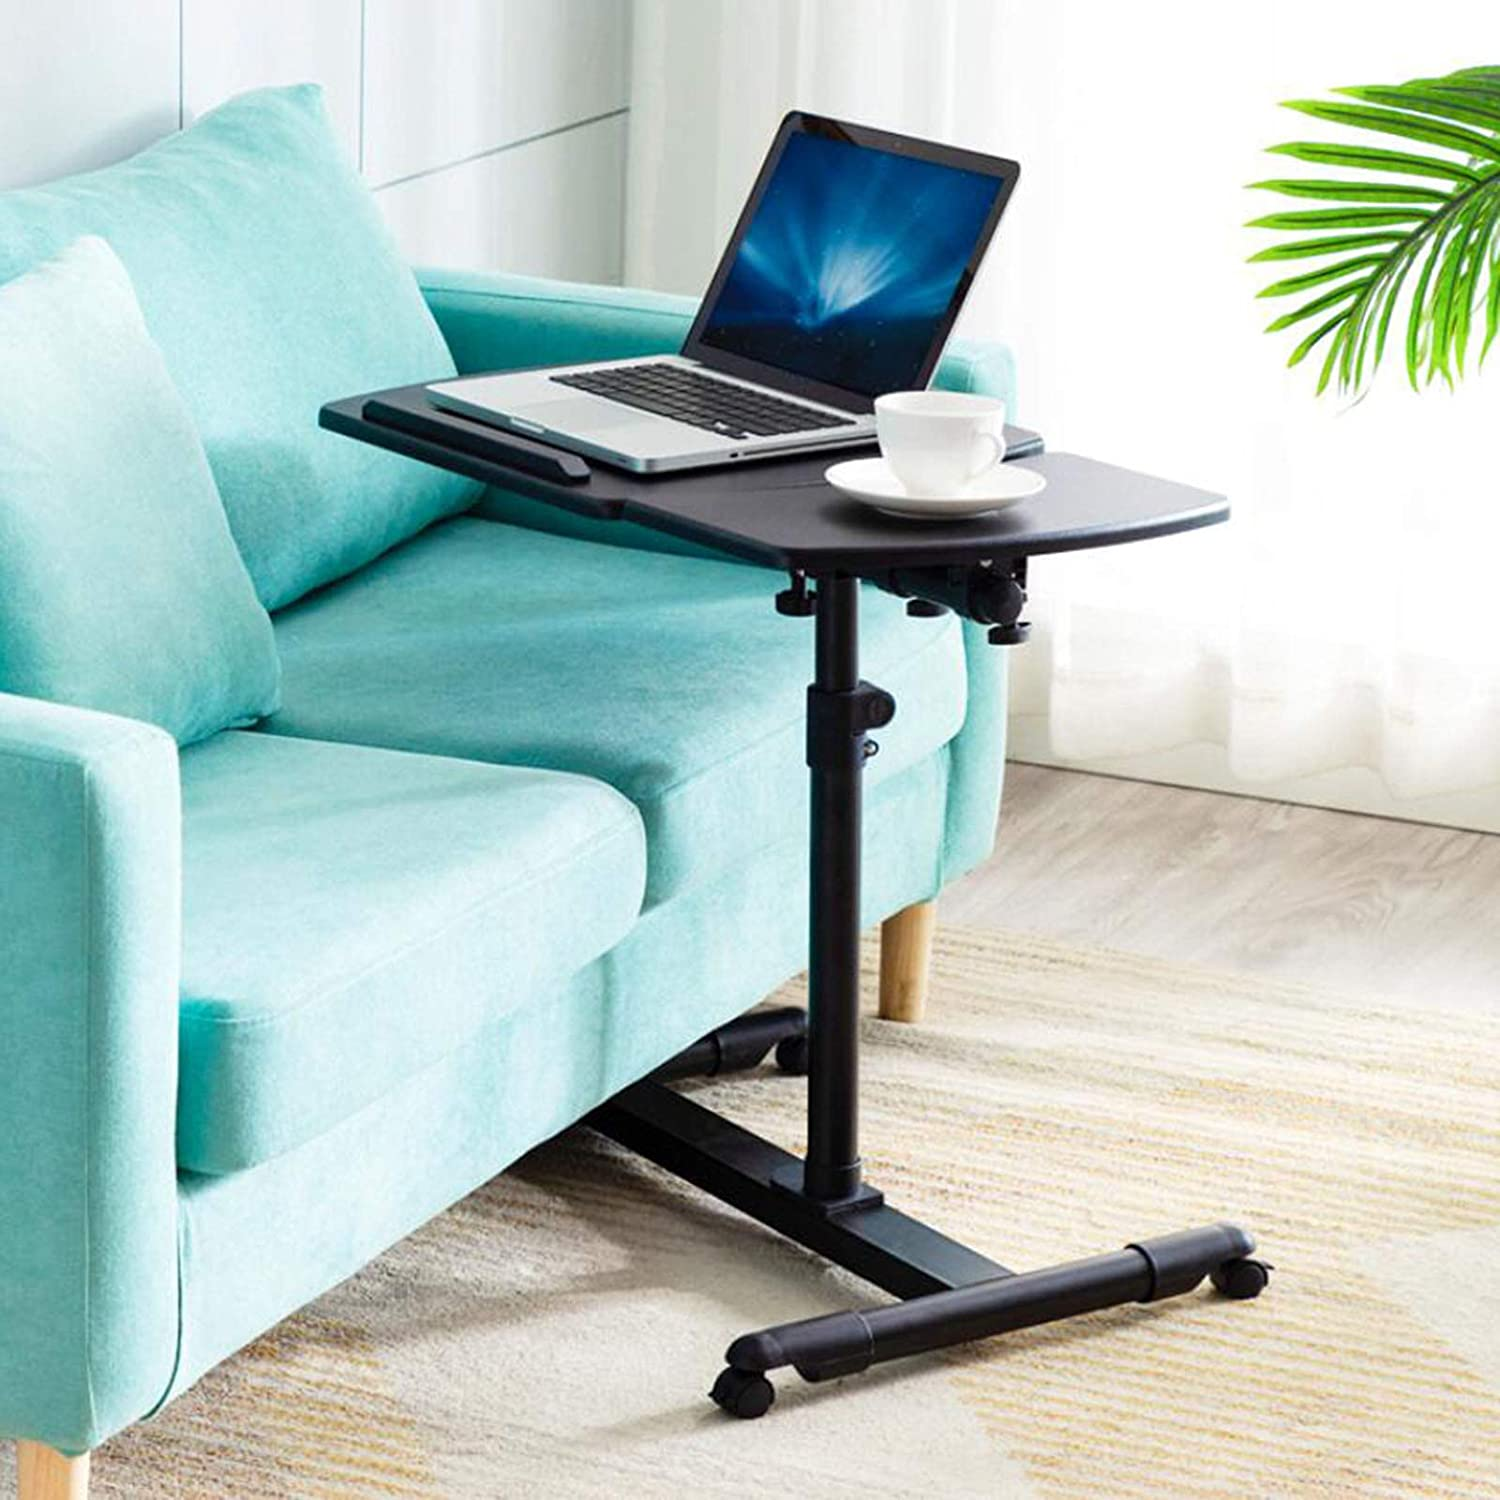 CGBF-Portable Easy-to-use Tilting Mobile Laptop Computer At the price of surprise with Cart Desk Mous